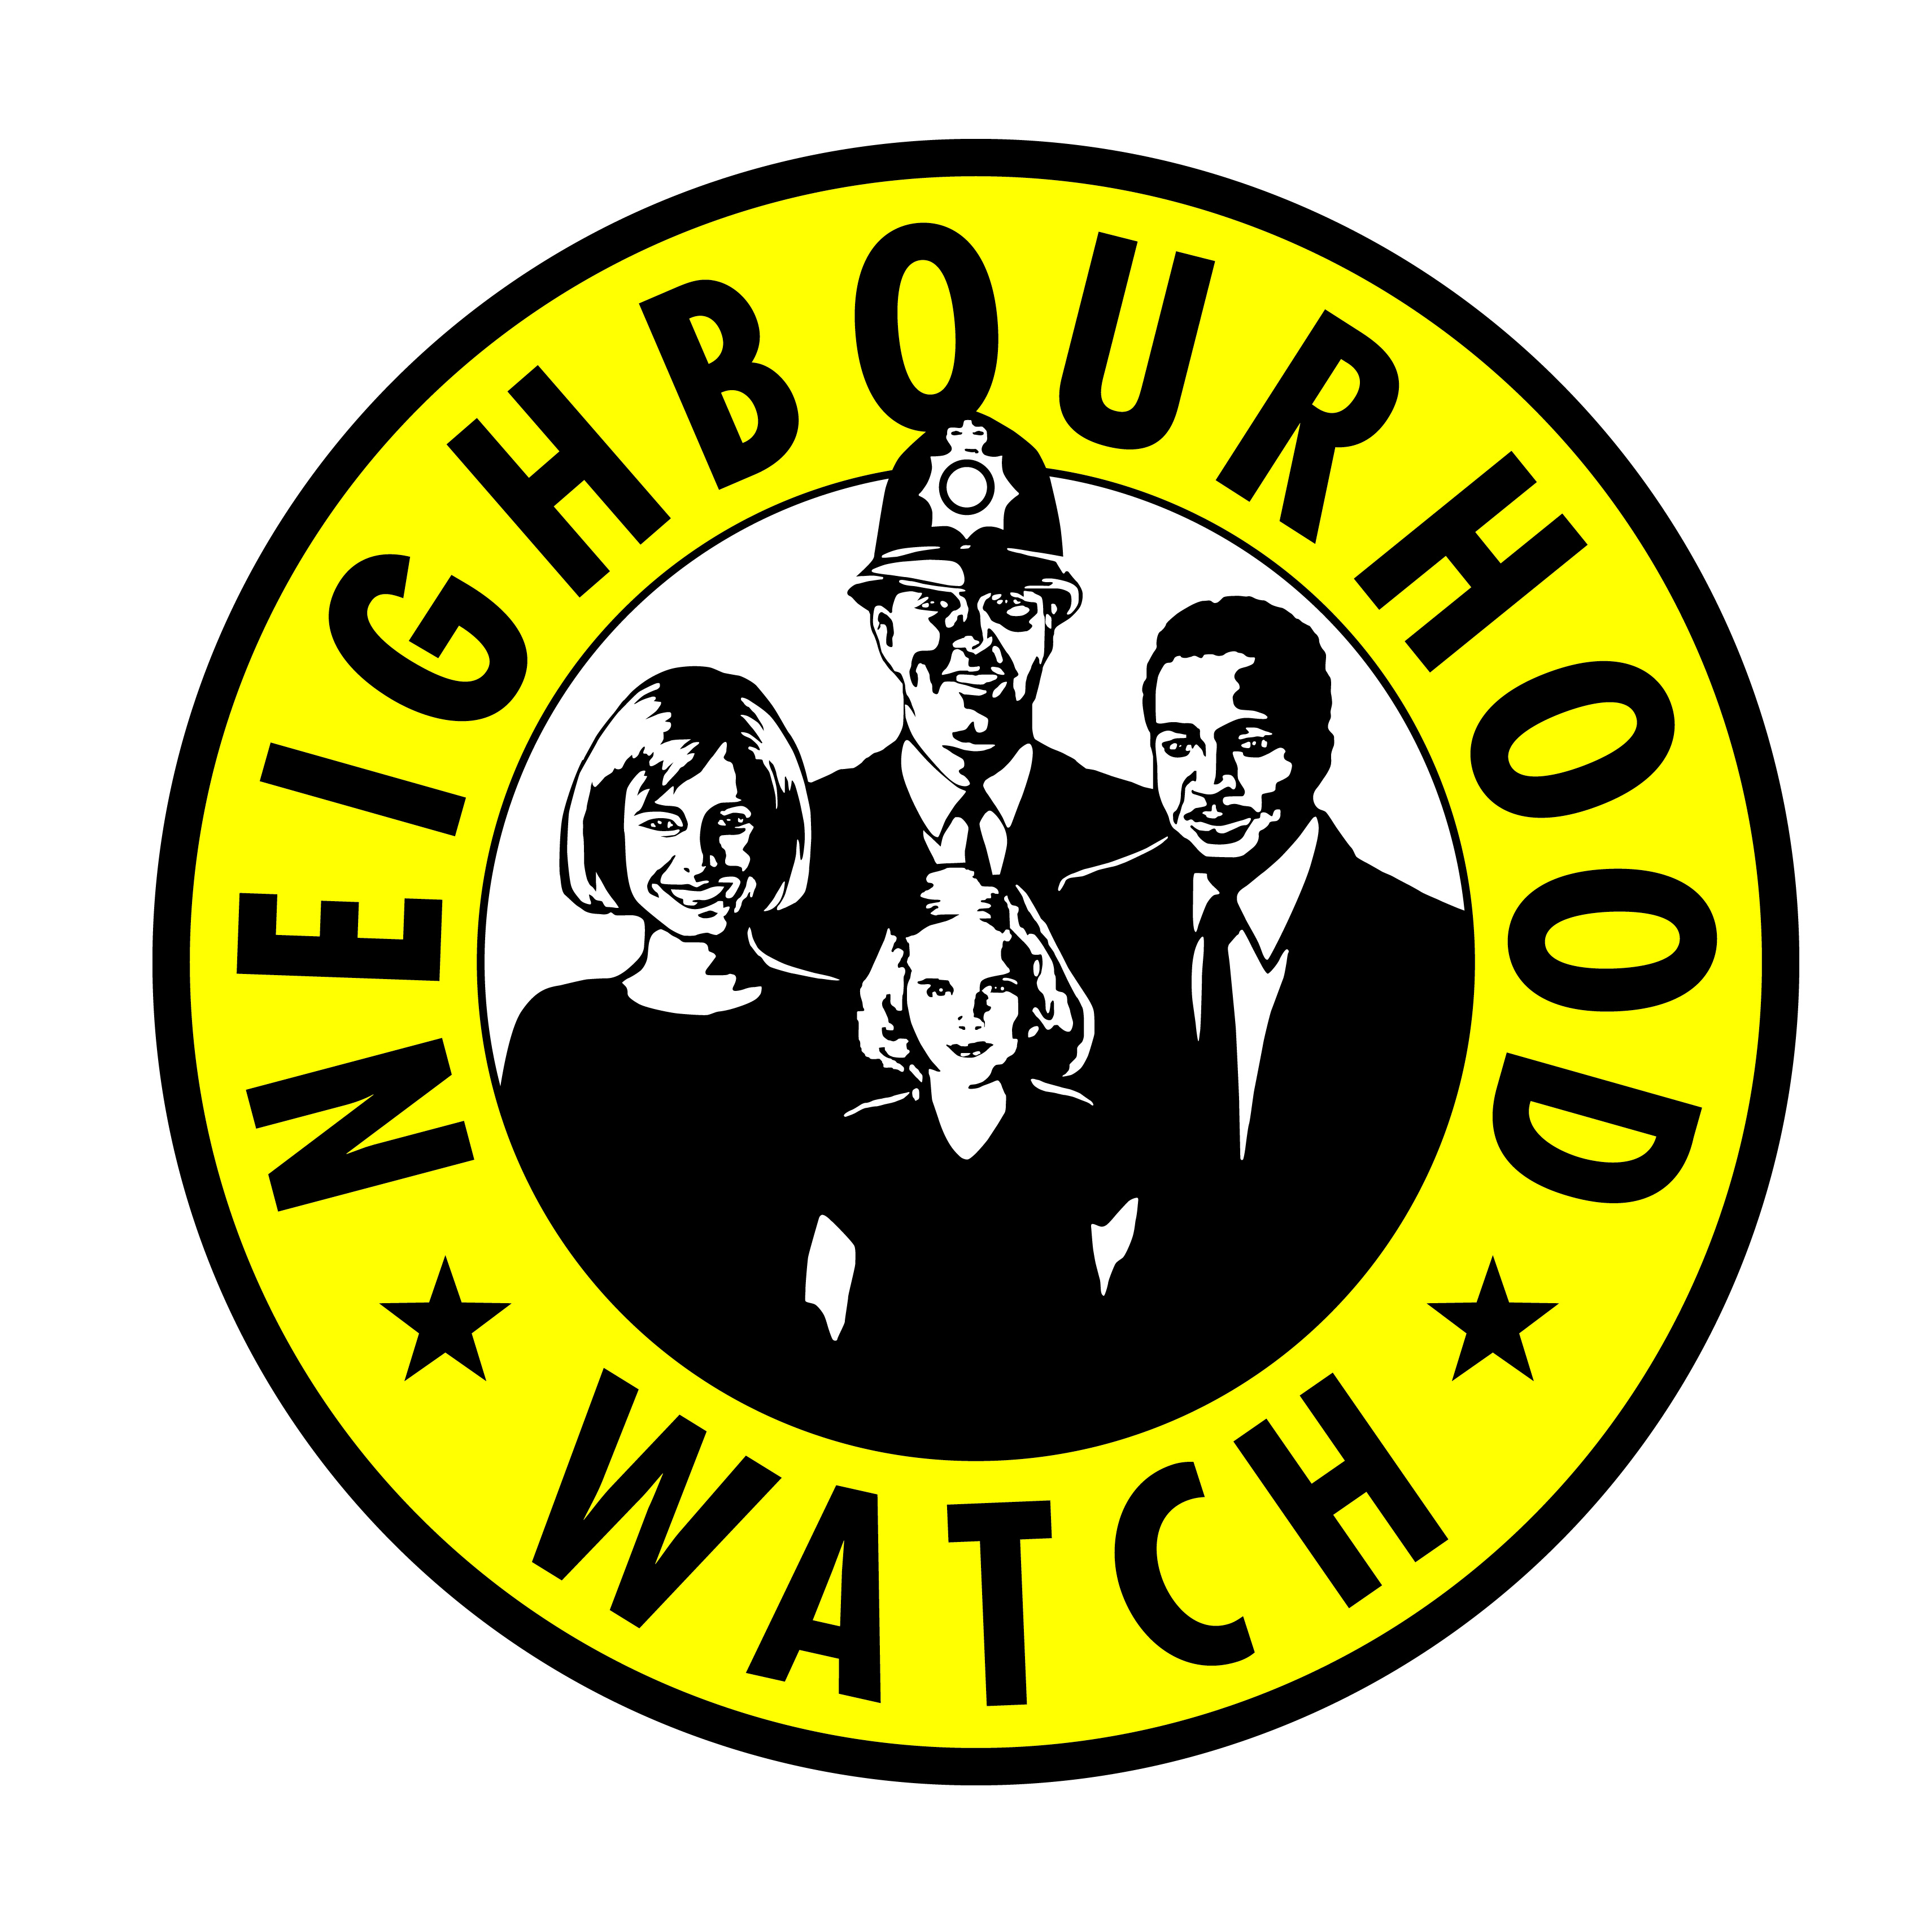 Neighbourhood Watch Clipart.